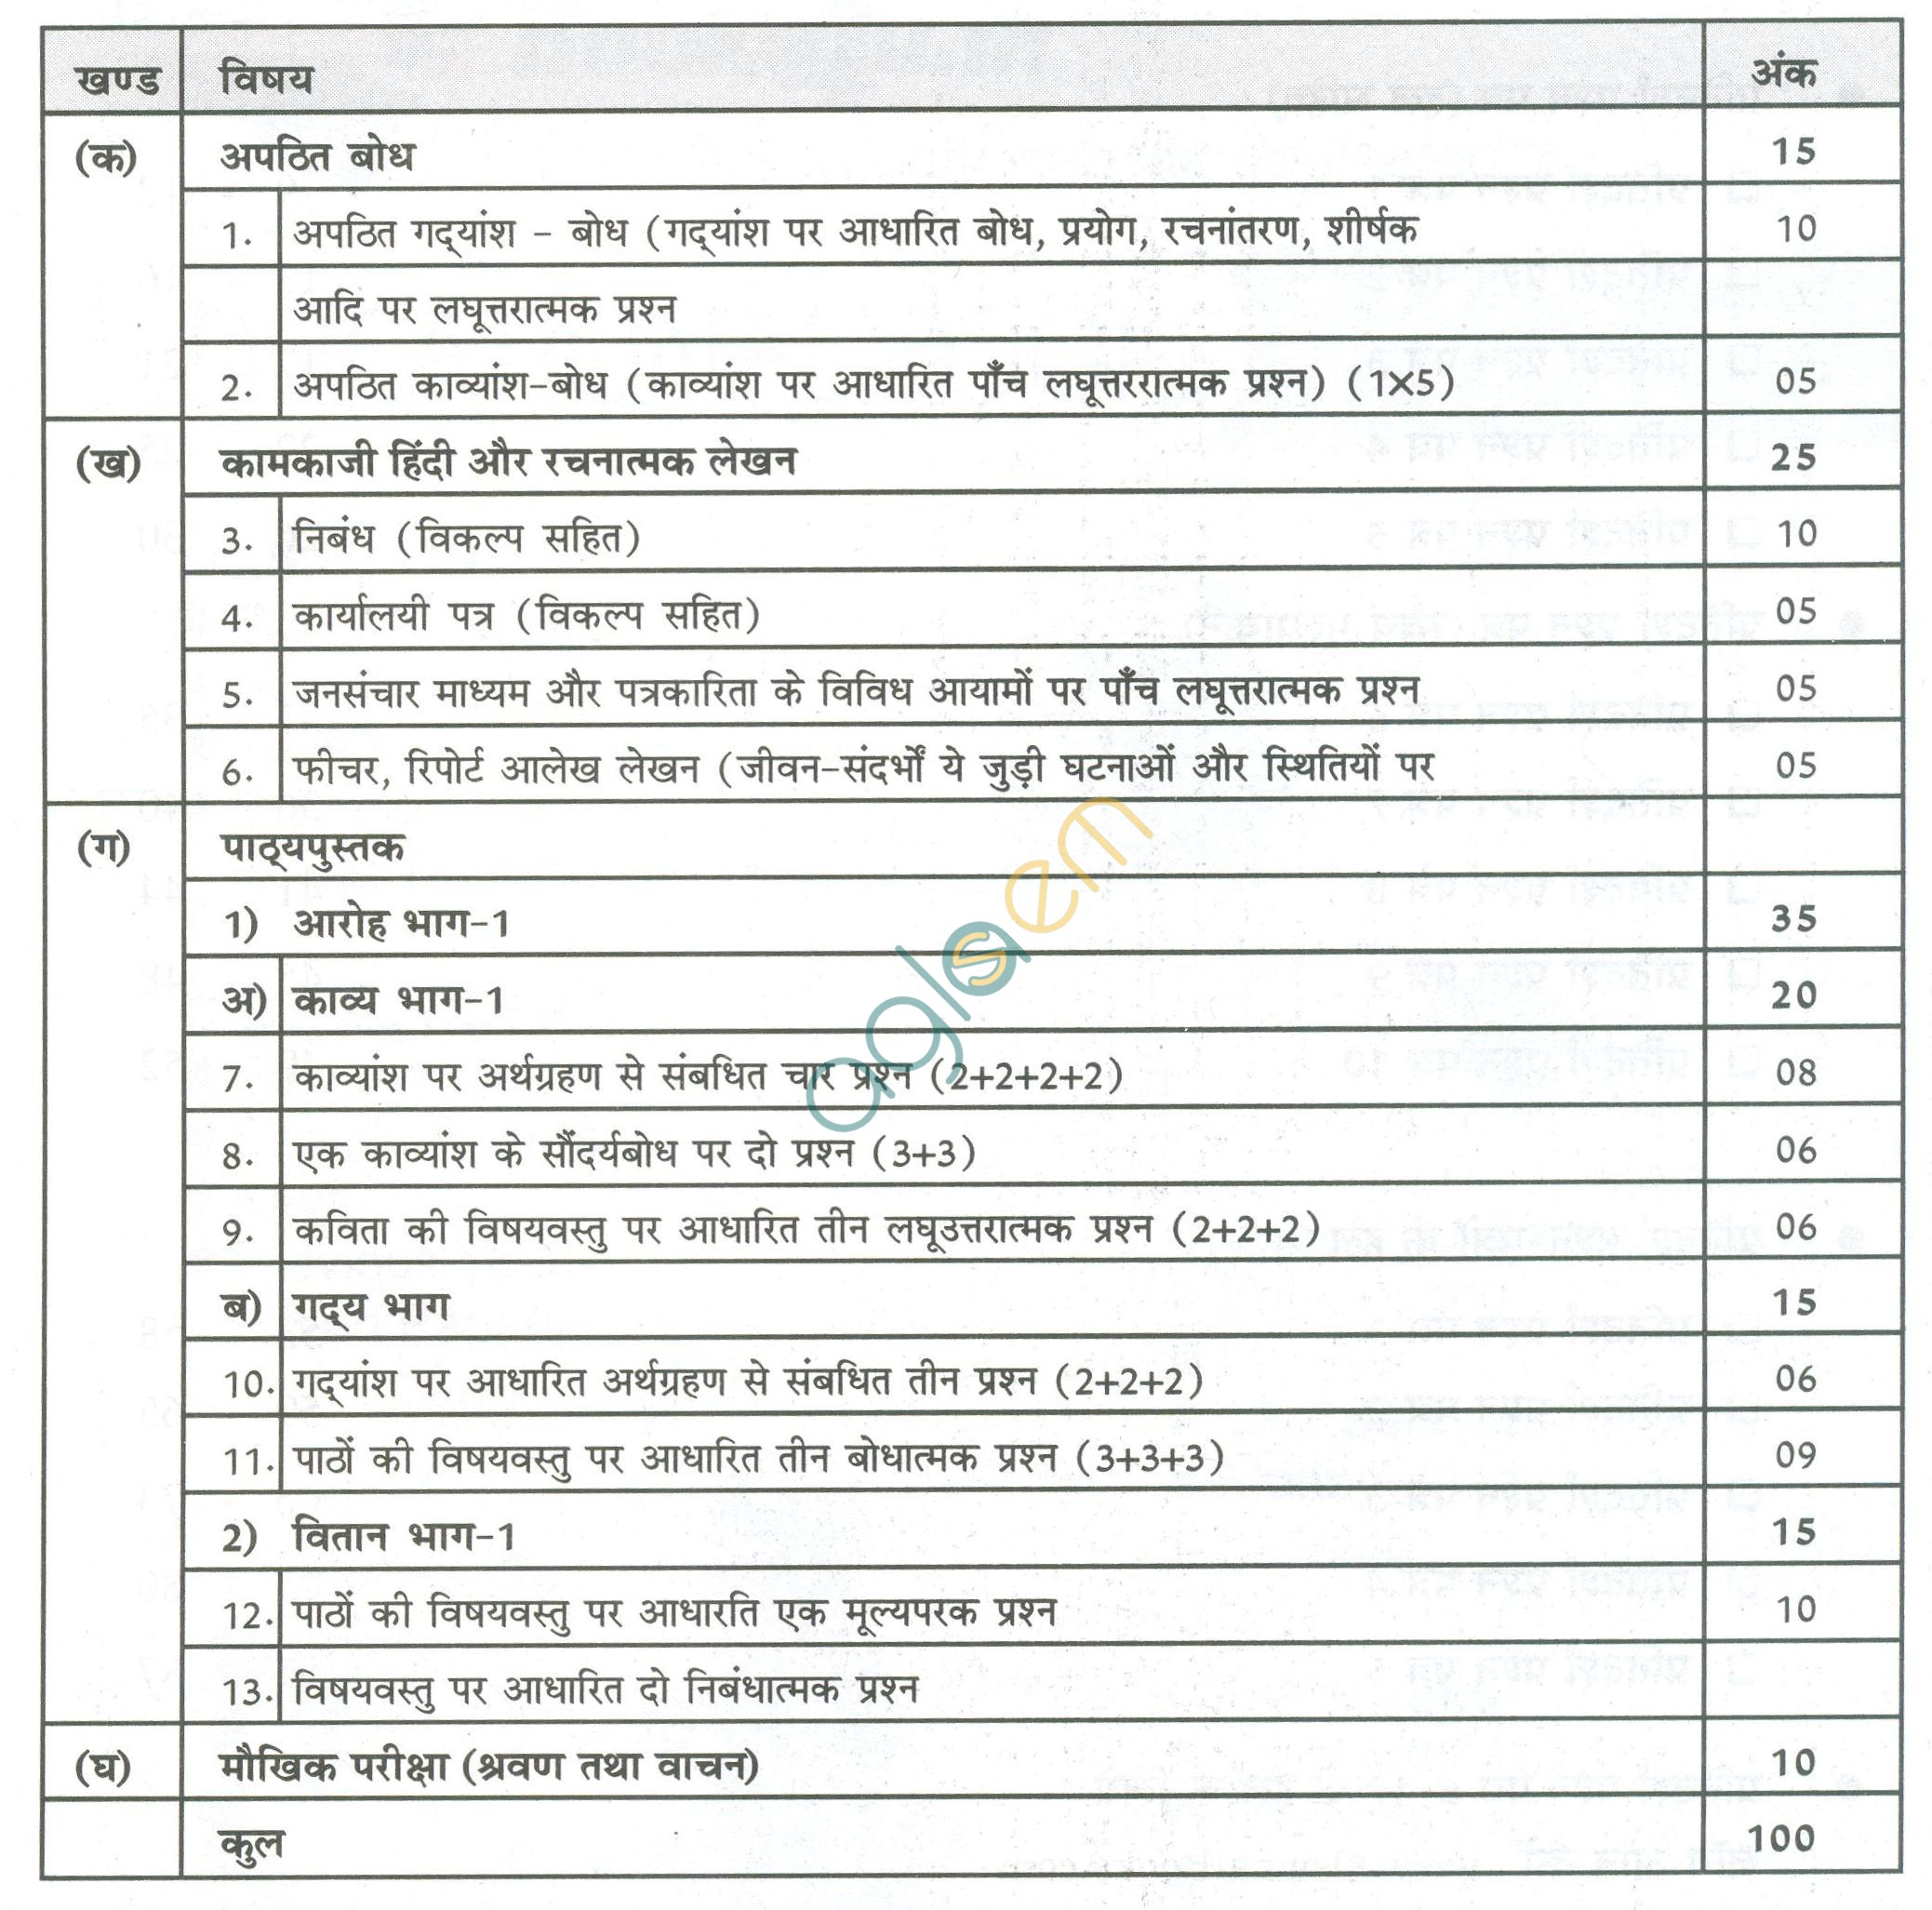 Cbse sample papers for class 11 hindi solved aglasem schools cbse sample papers for class 11 hindi solved malvernweather Images